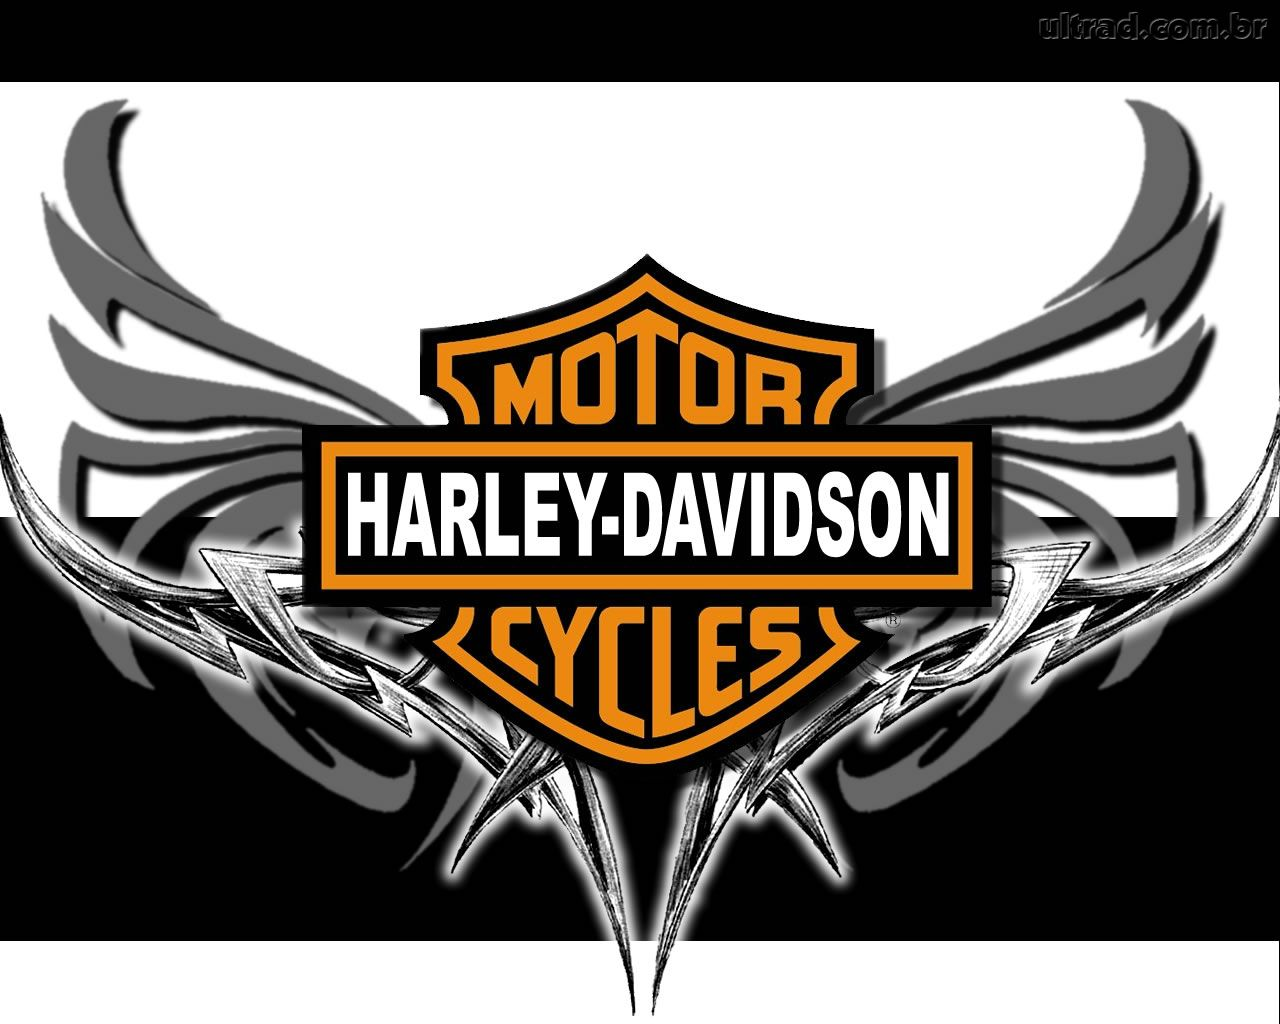 Harley Davidson Wallpaper 6879 Hd Wallpapers in Bikes   Imagescicom 1280x1024